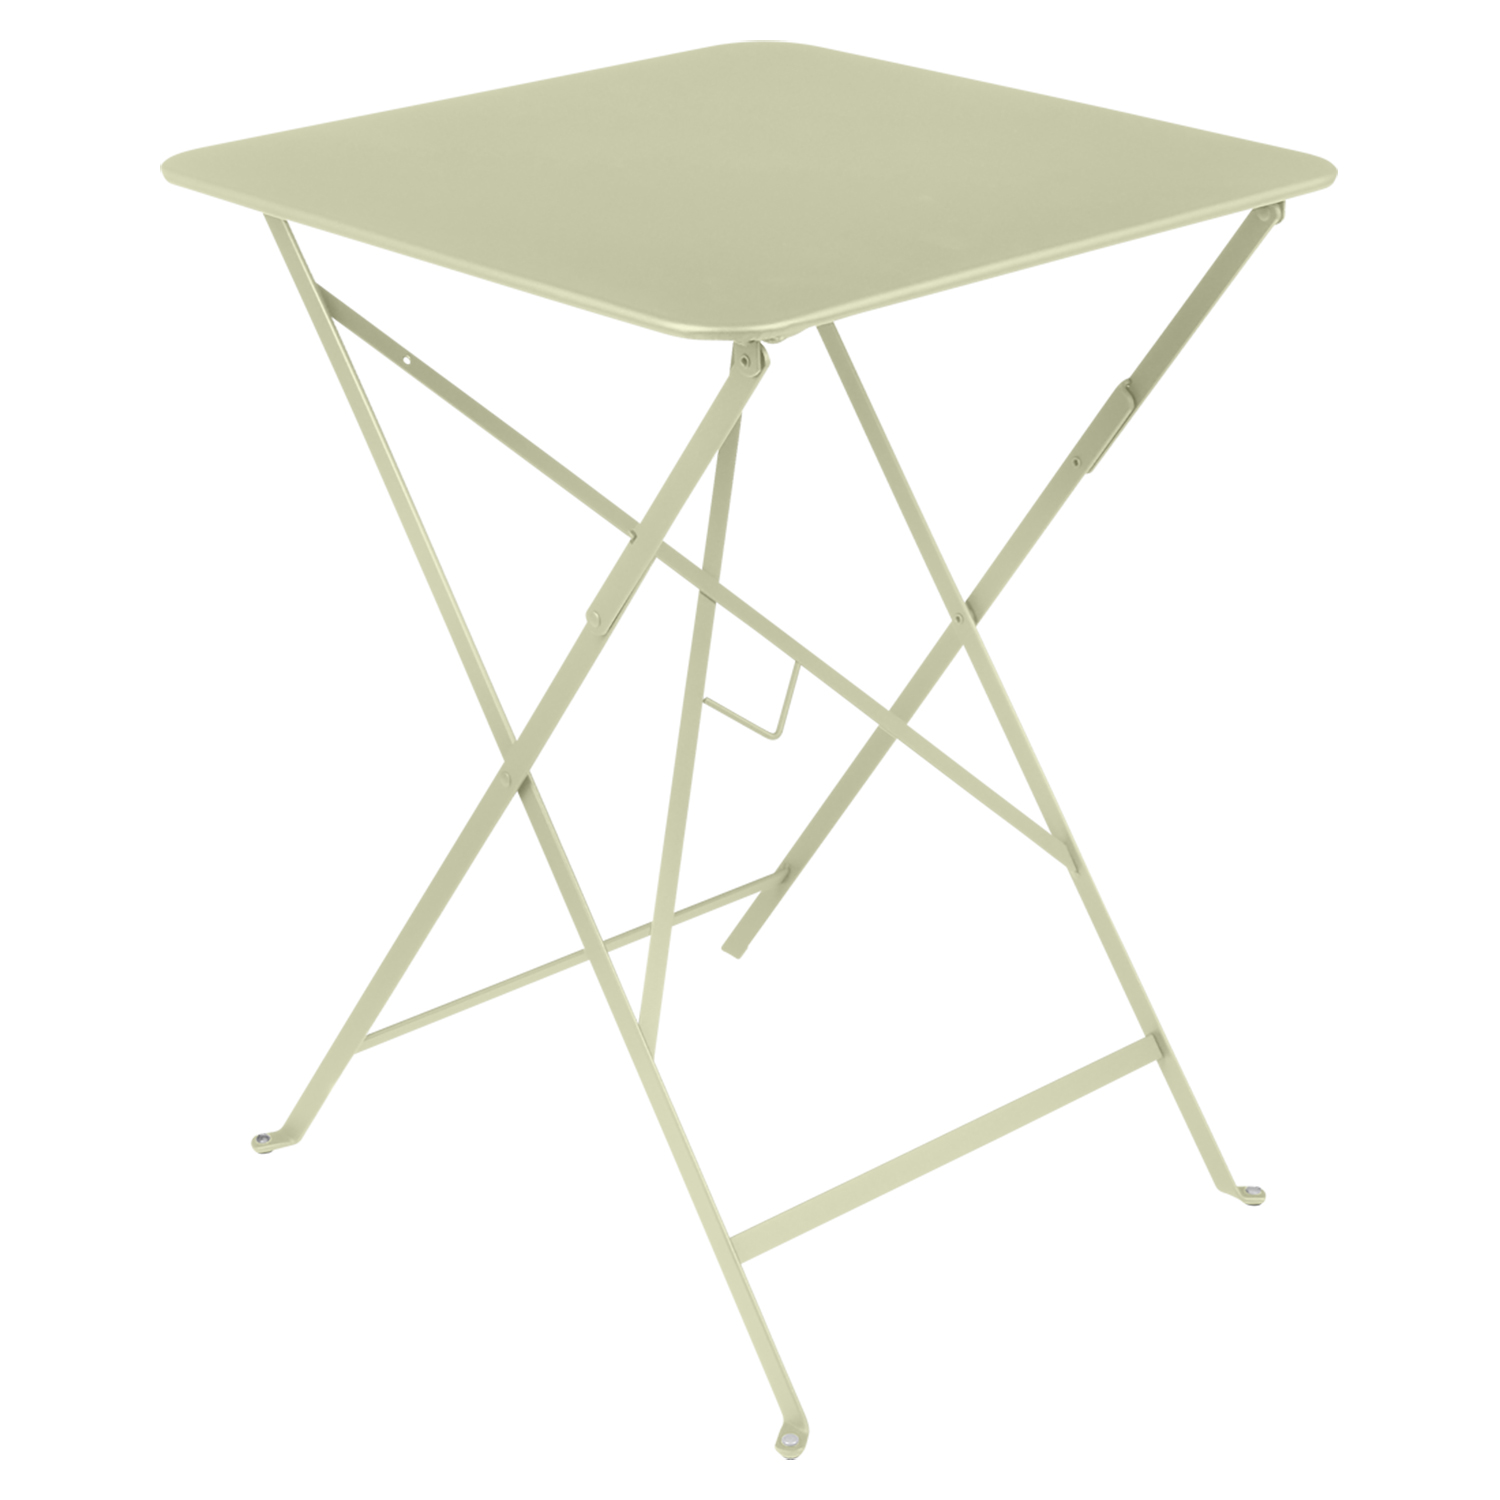 Bistro bord 57x57, willow green